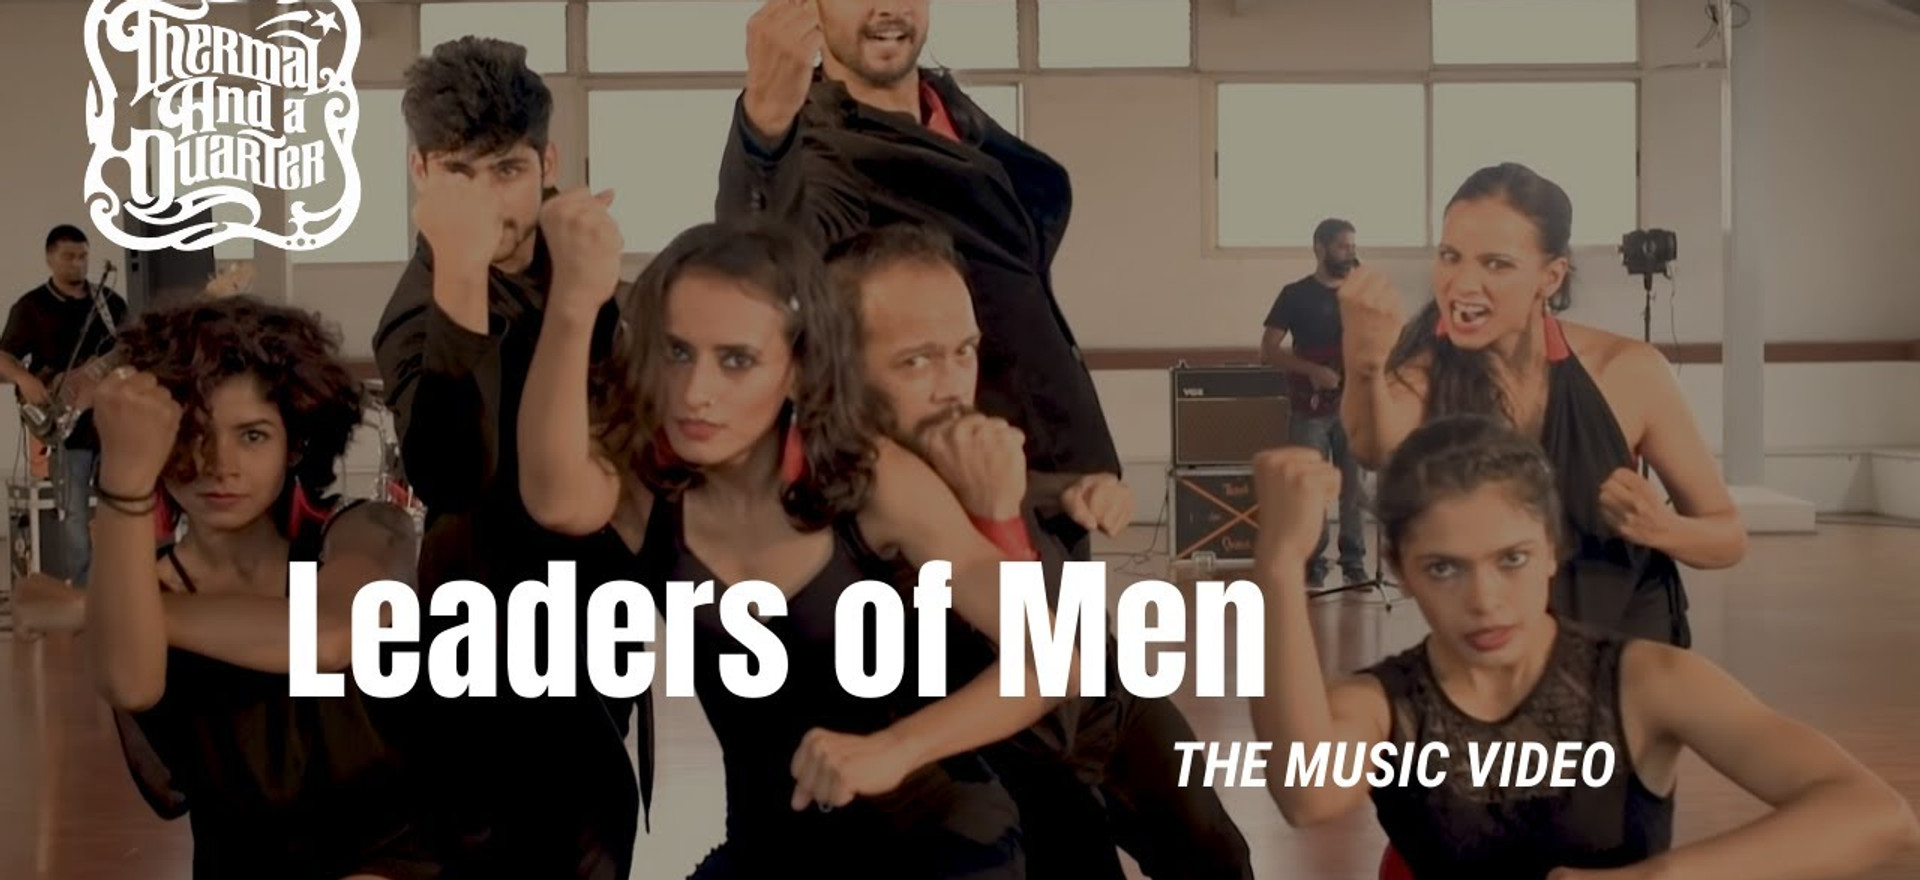 Thermal And A Quarter: Leaders of Men - Music Video